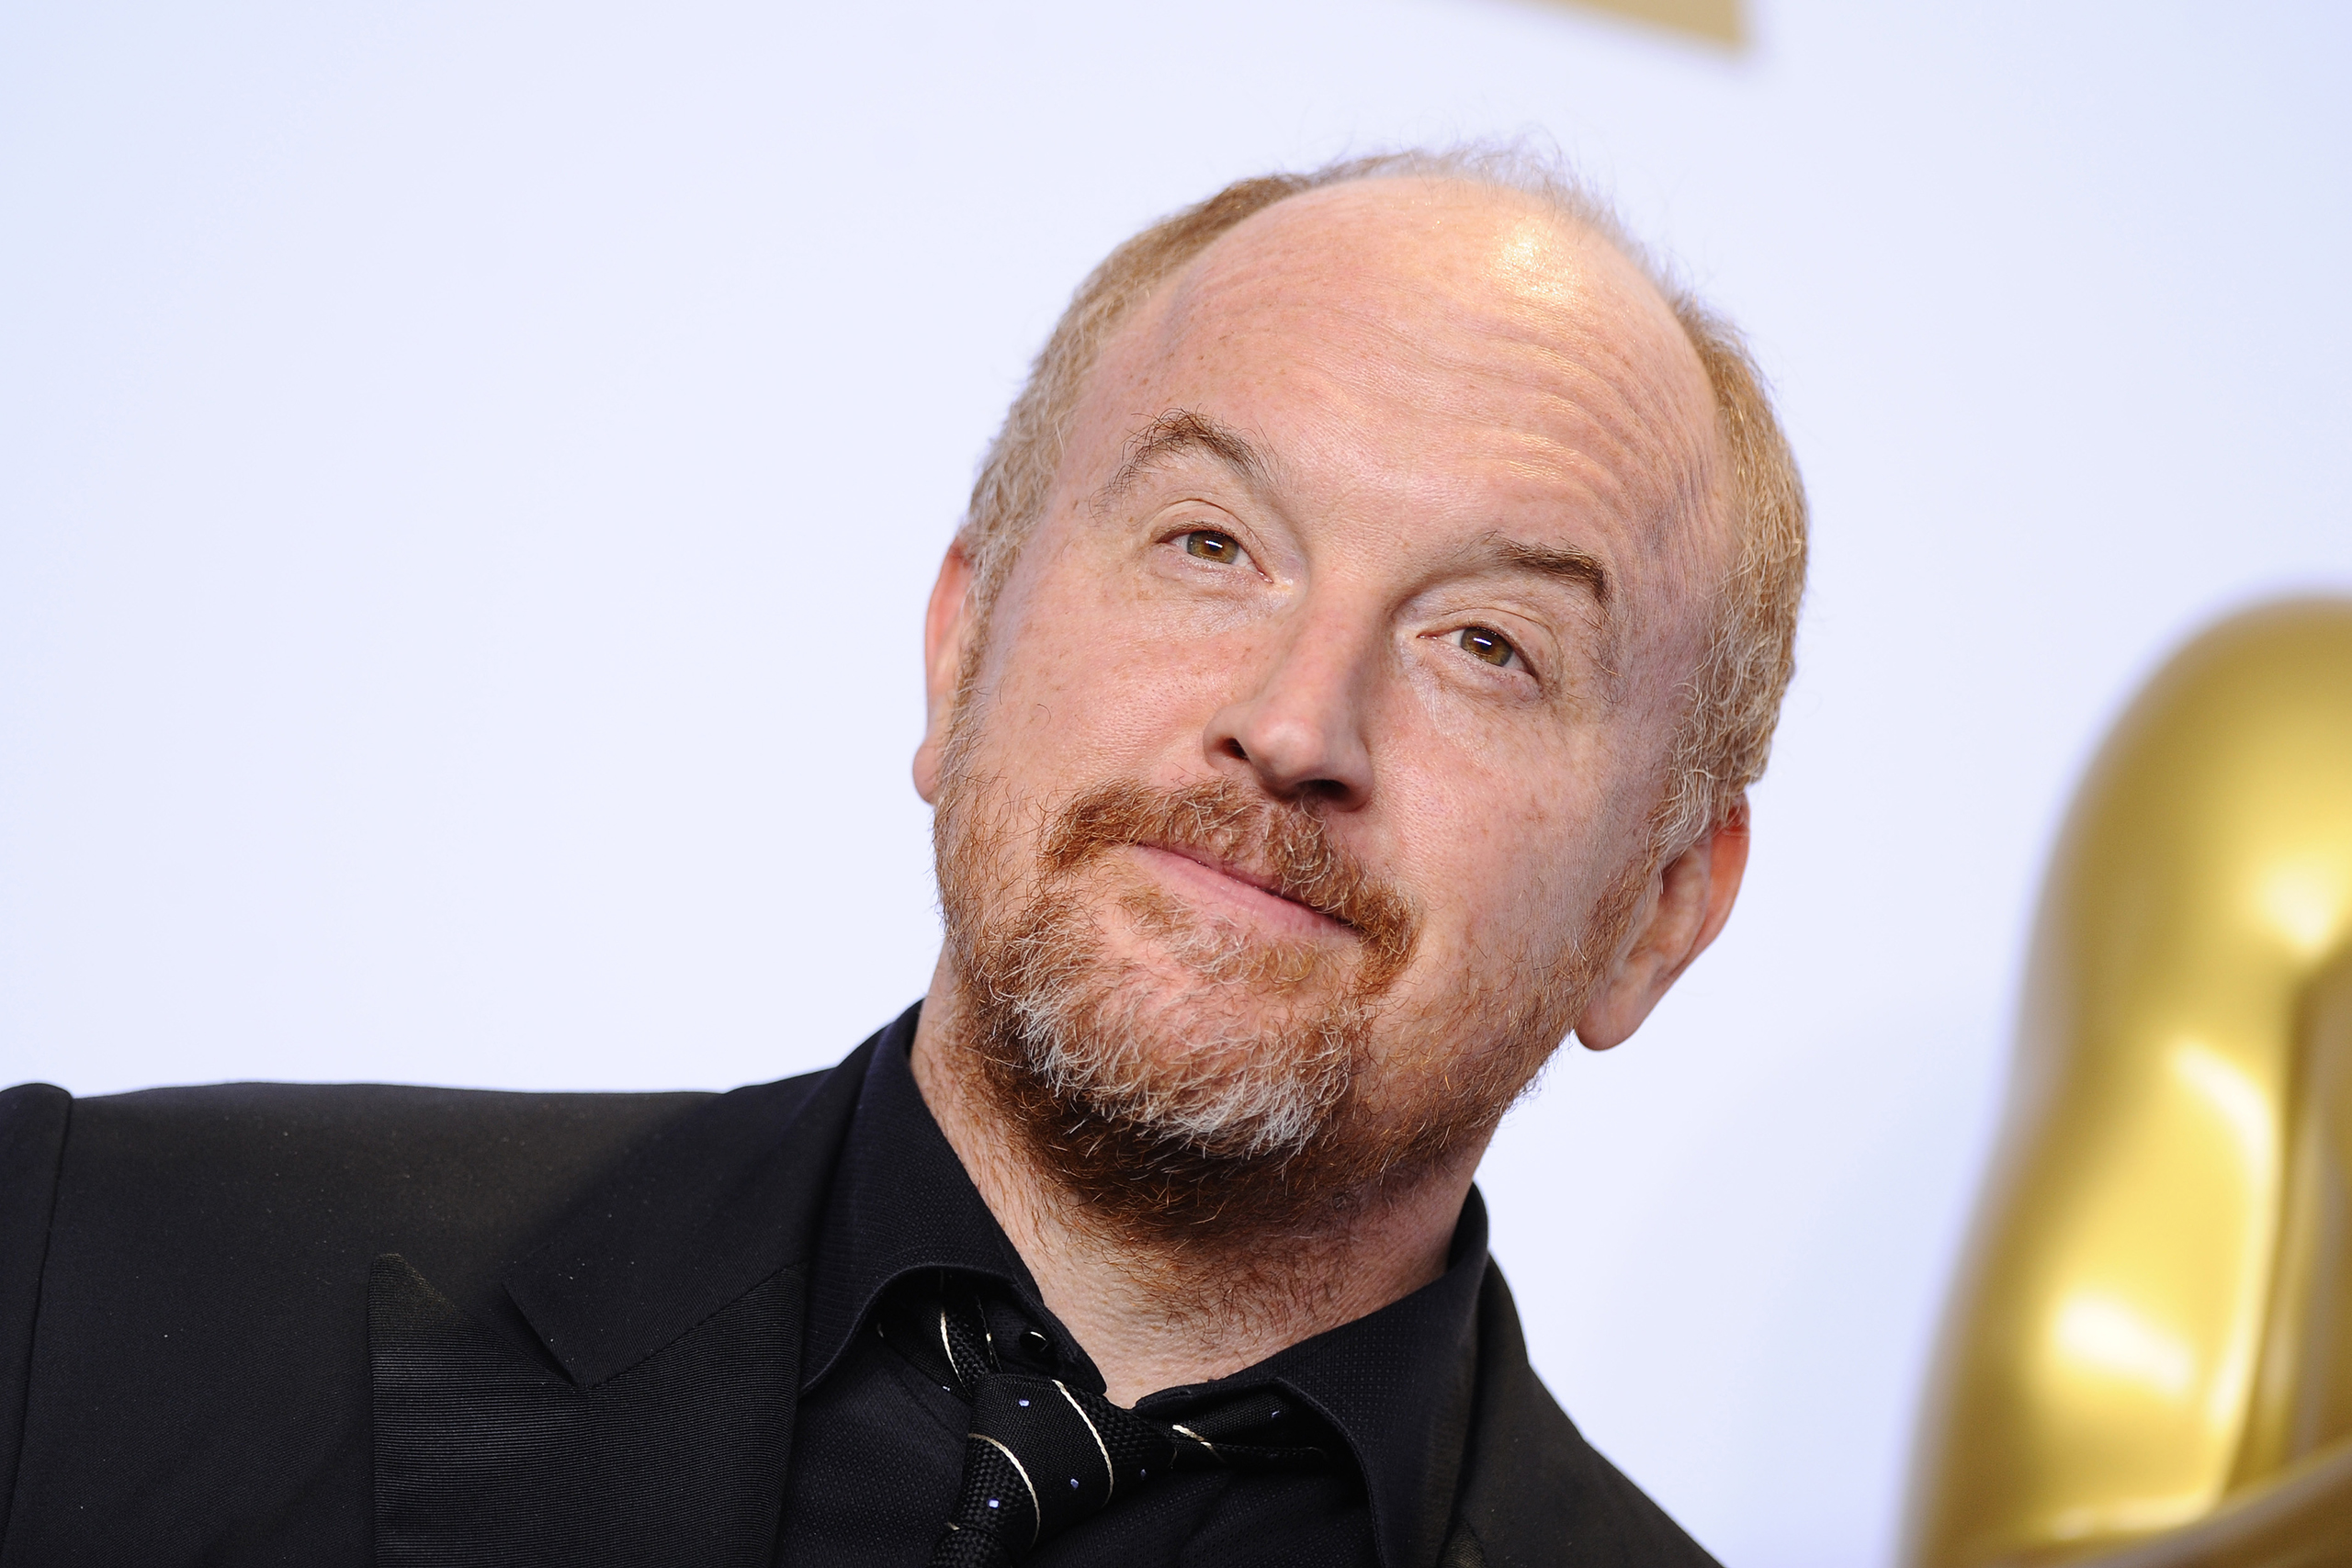 Louis C.K. poses in the press room during the 88th Annual Academy Awards at Loews Hollywood Hotel in Los Angeles, on Feb. 28, 2016.